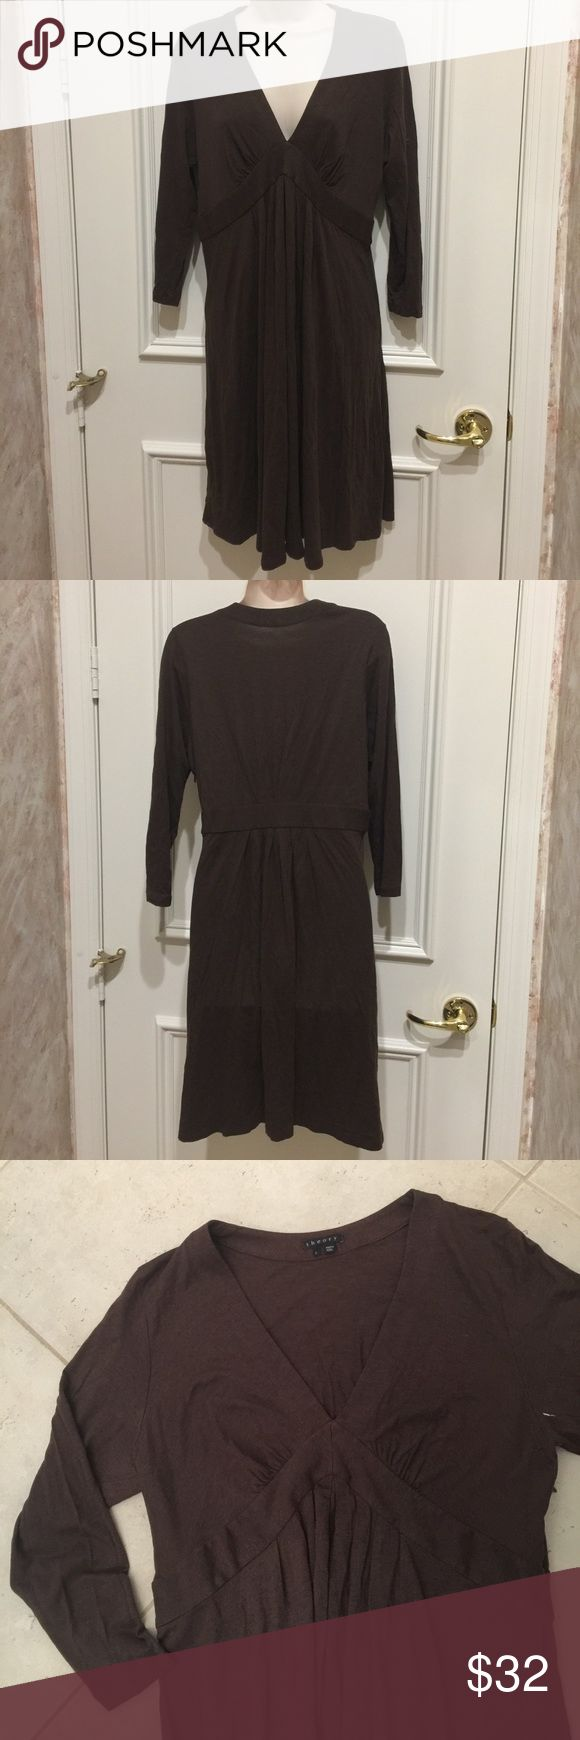 Theory Brown V-Neck 3/4 Sleeve Dress Theory Brown V-Neck 3/4 Sleeve Dress. Size Large. 50% Cotton, 50% Modal. Perfect transitional dress into fall! Theory Dresses Midi